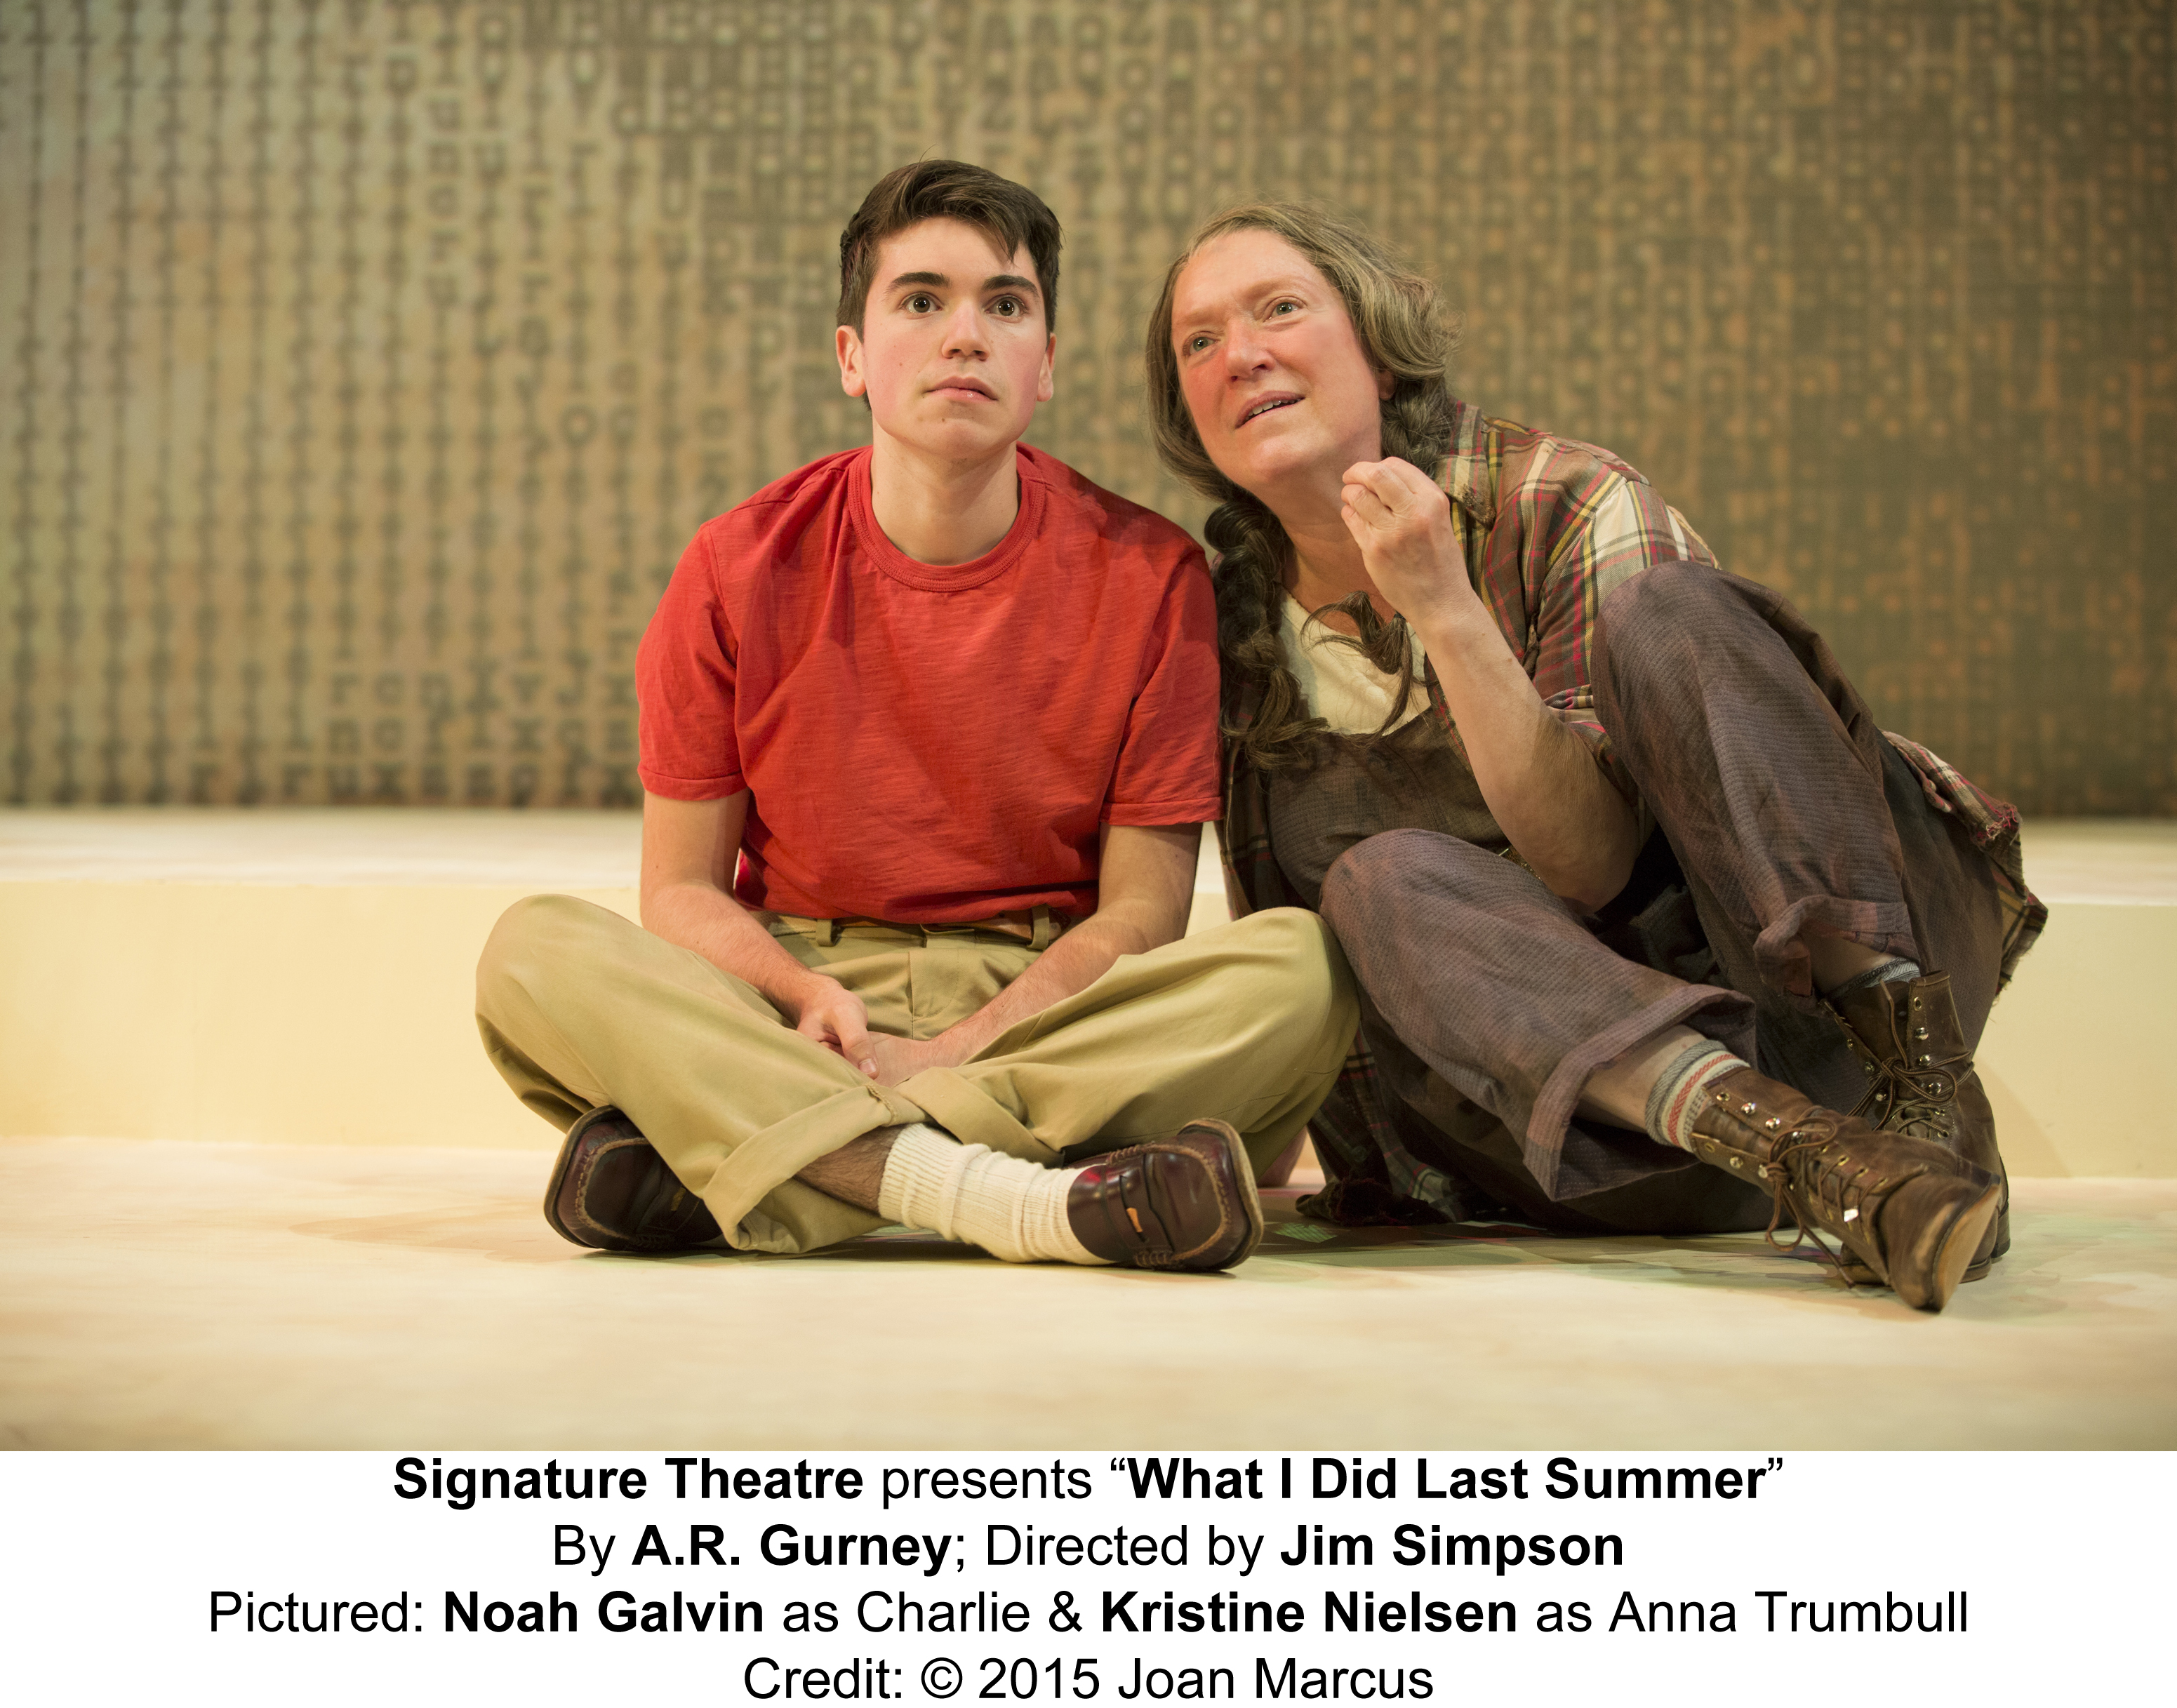 What I Did Last Summer The Pershing Square Signature Center/Irene Diamond Stage Carolyn McCormick and Tony nominee Kristine Nielsen will star as Grace and Anna Trumbull, respectively, alongside Pico Alexander as Ted, Juliet Brett as Bonny, Noah Galvin as Charlie and Kate McGonigle as Elsie. Performances will begin on April 28 at the Irene Diamond Stage at the Pershing Square Signature Center off-Broadway.